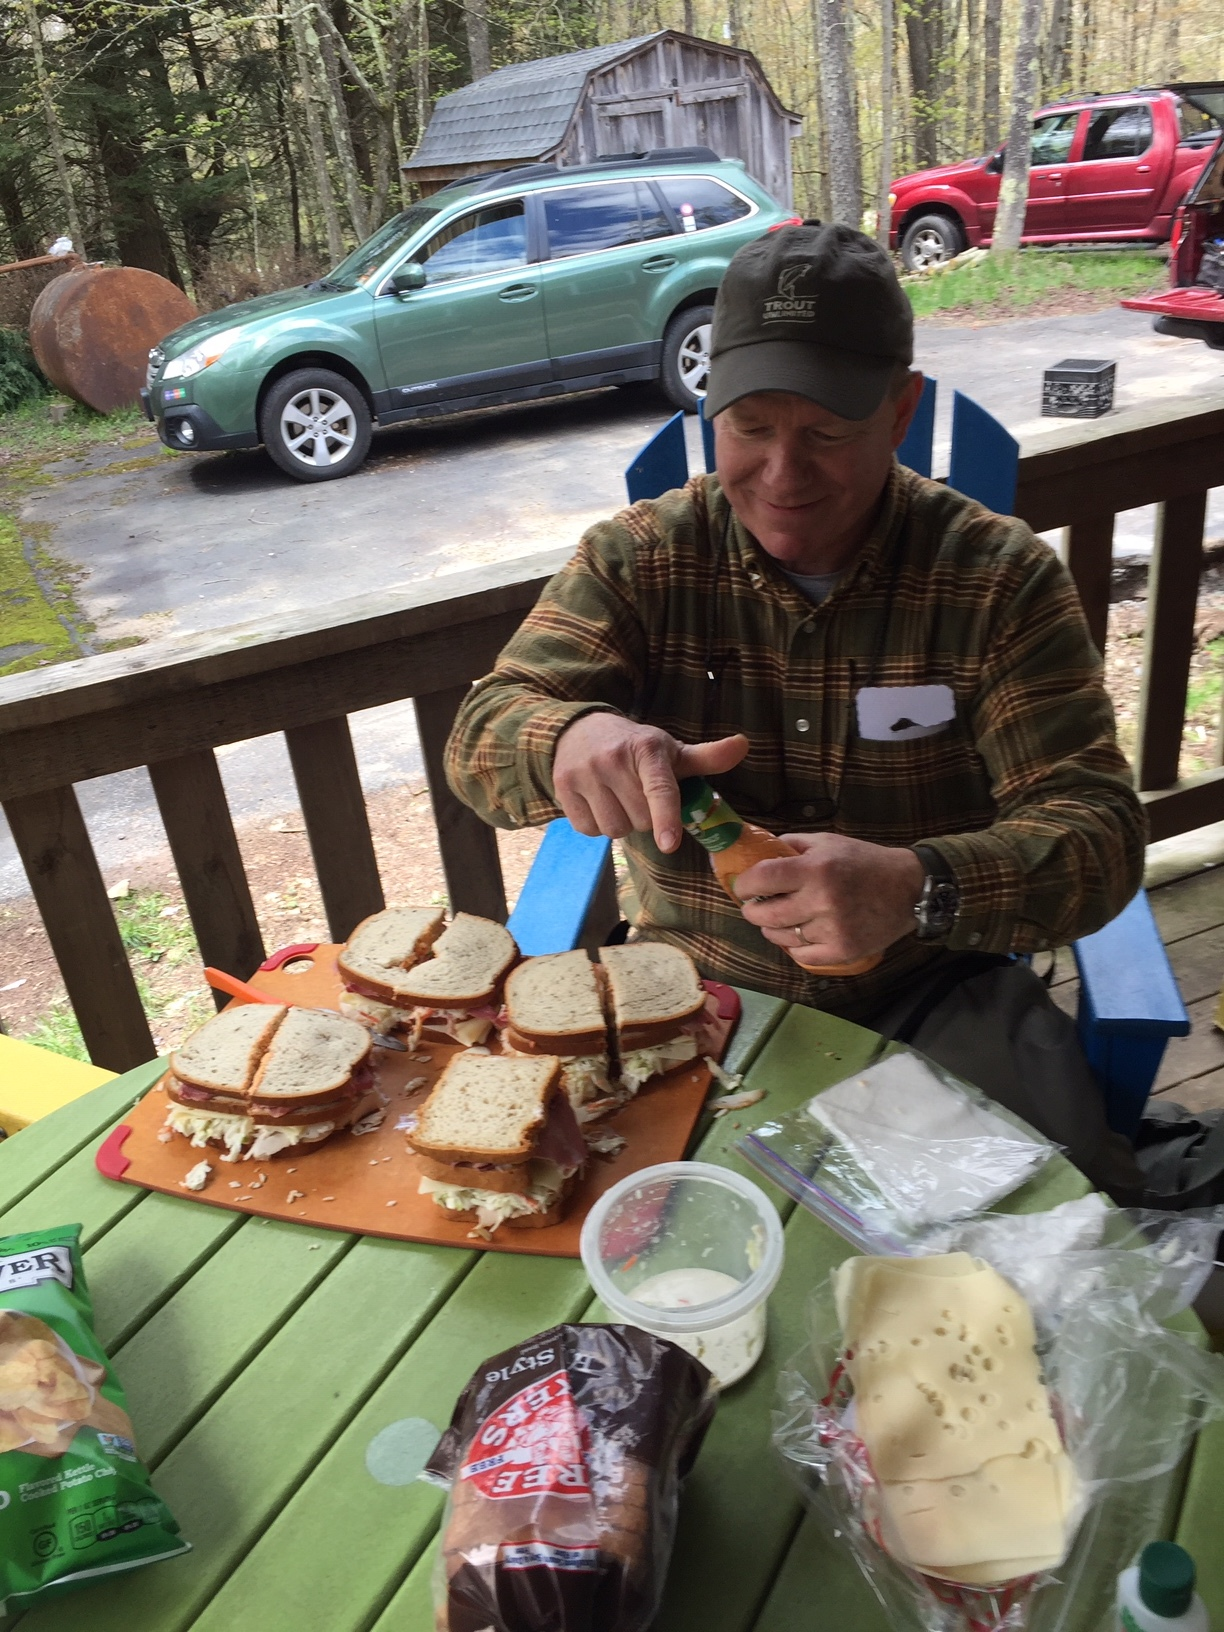 Bruce Pollock prepares sloppy joes at the Willowemoc, May 15, 2019